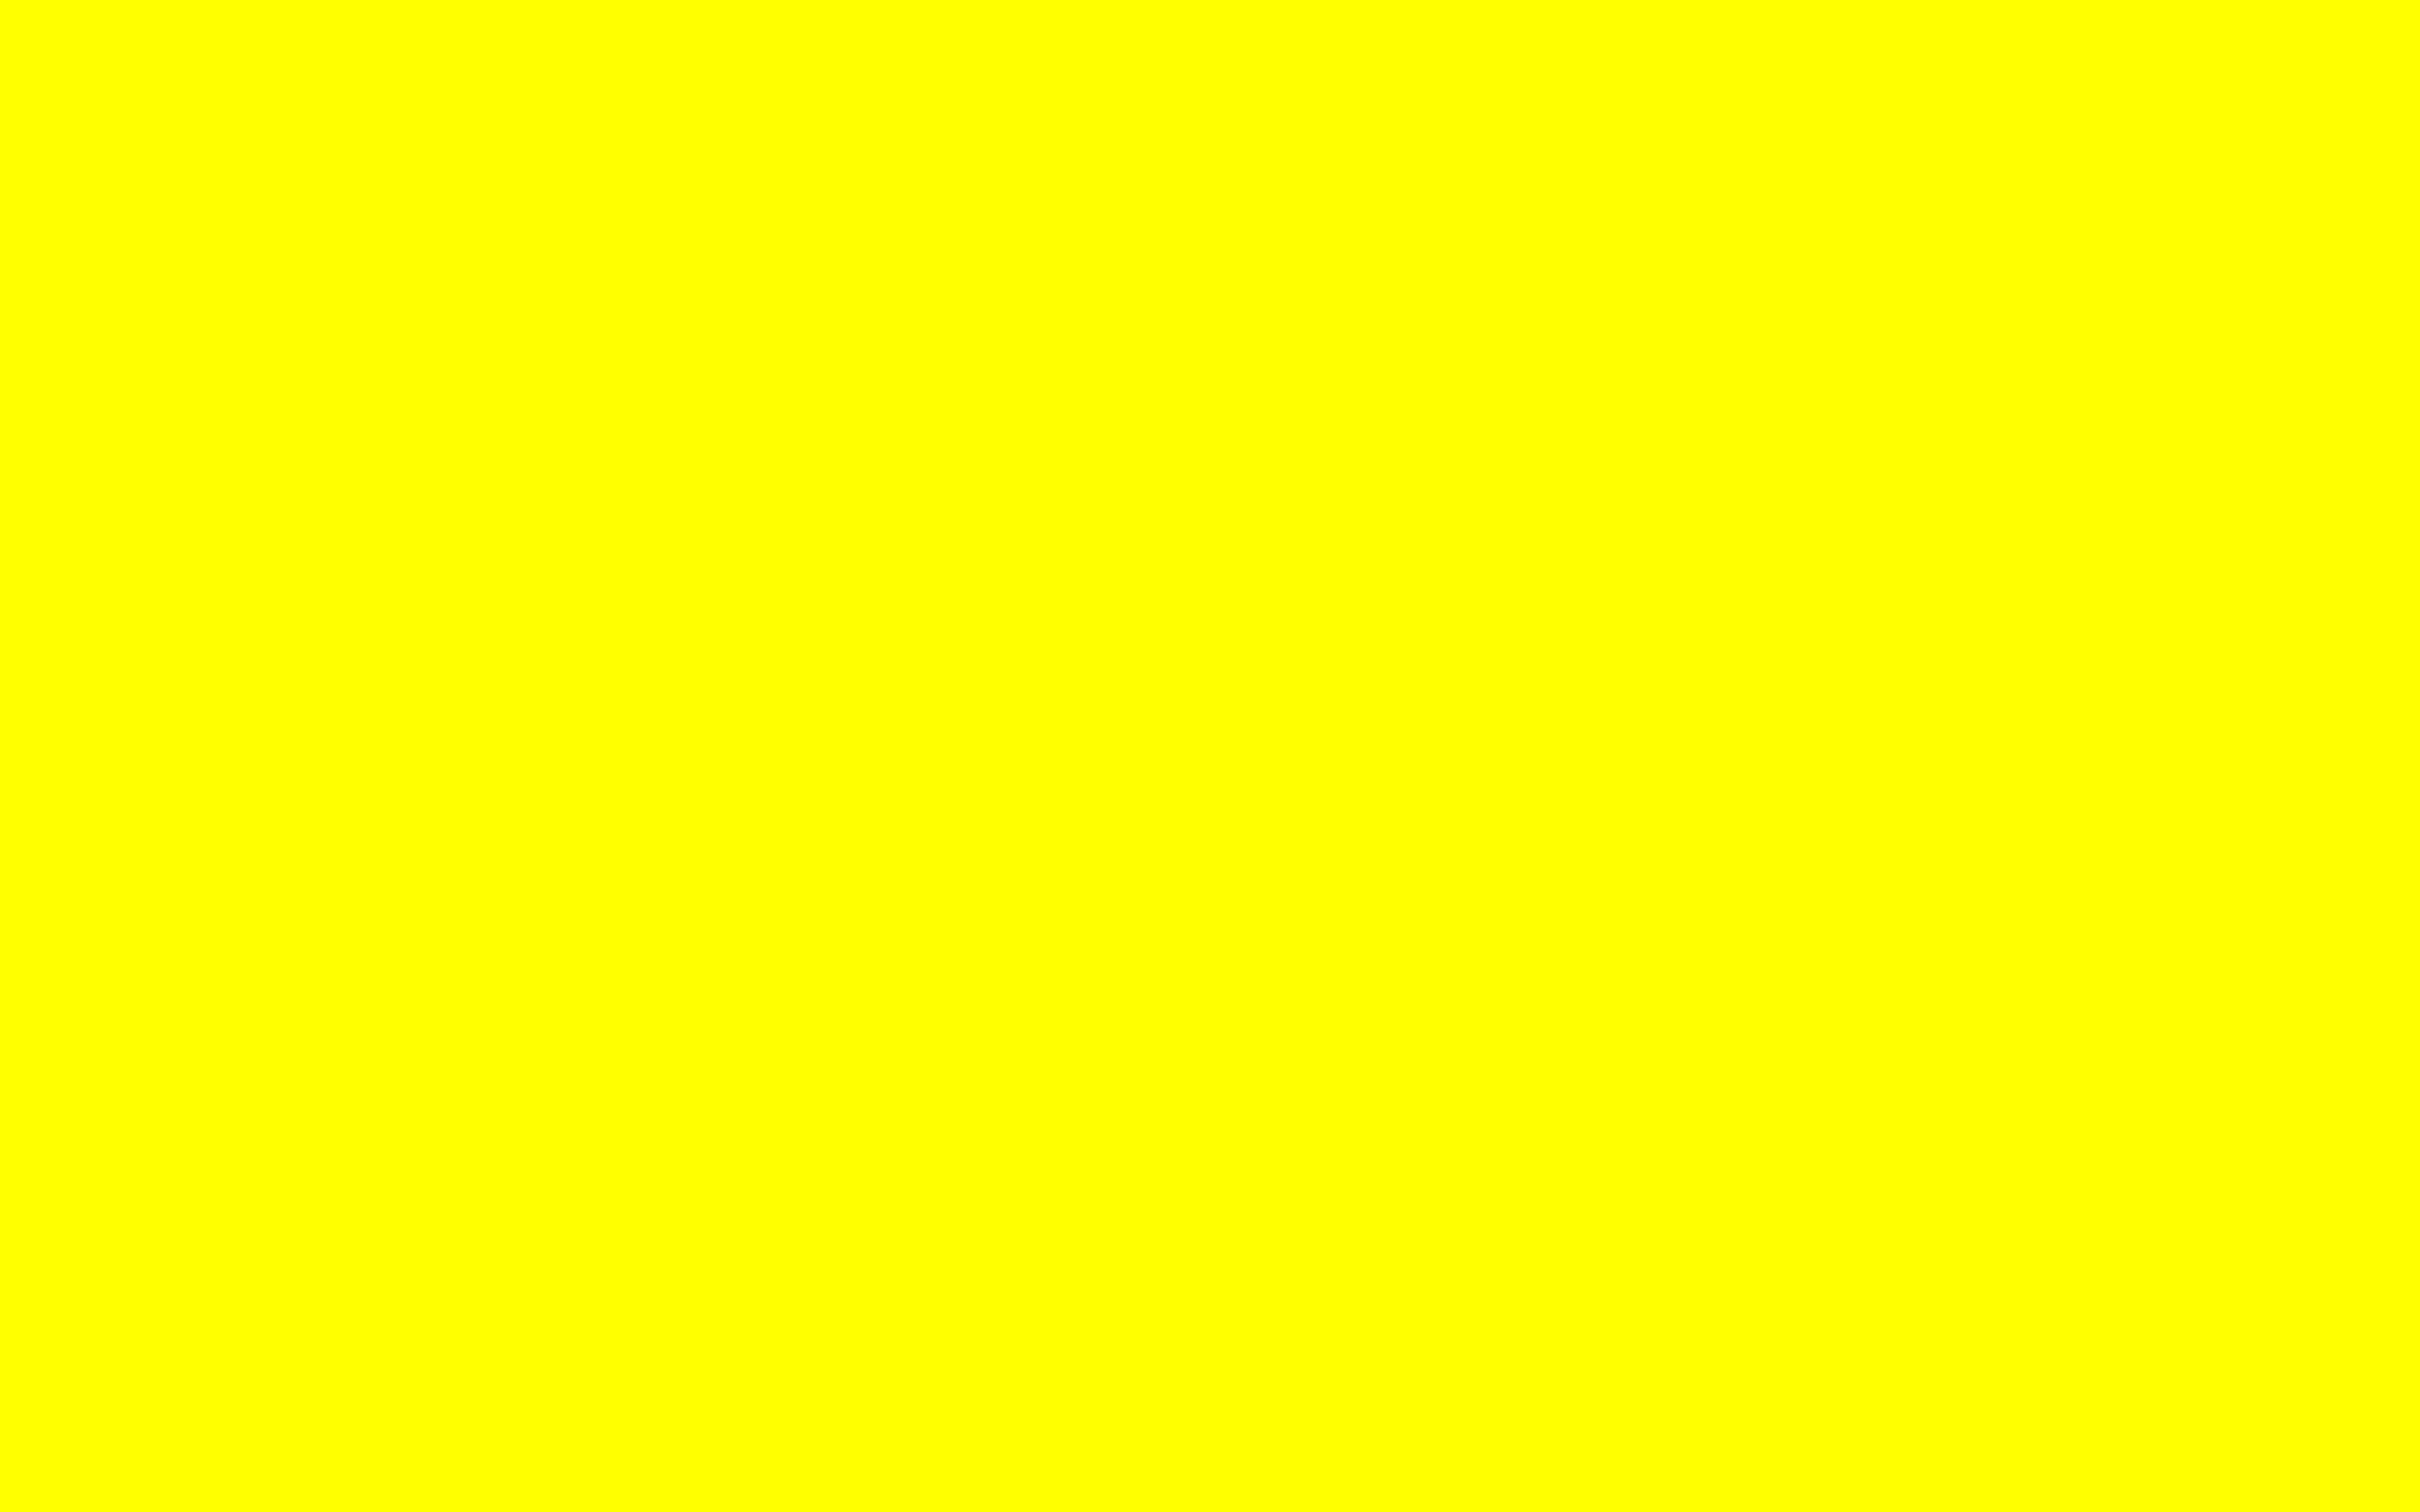 Yellow Backgrounds Image - Wallpaper Cave